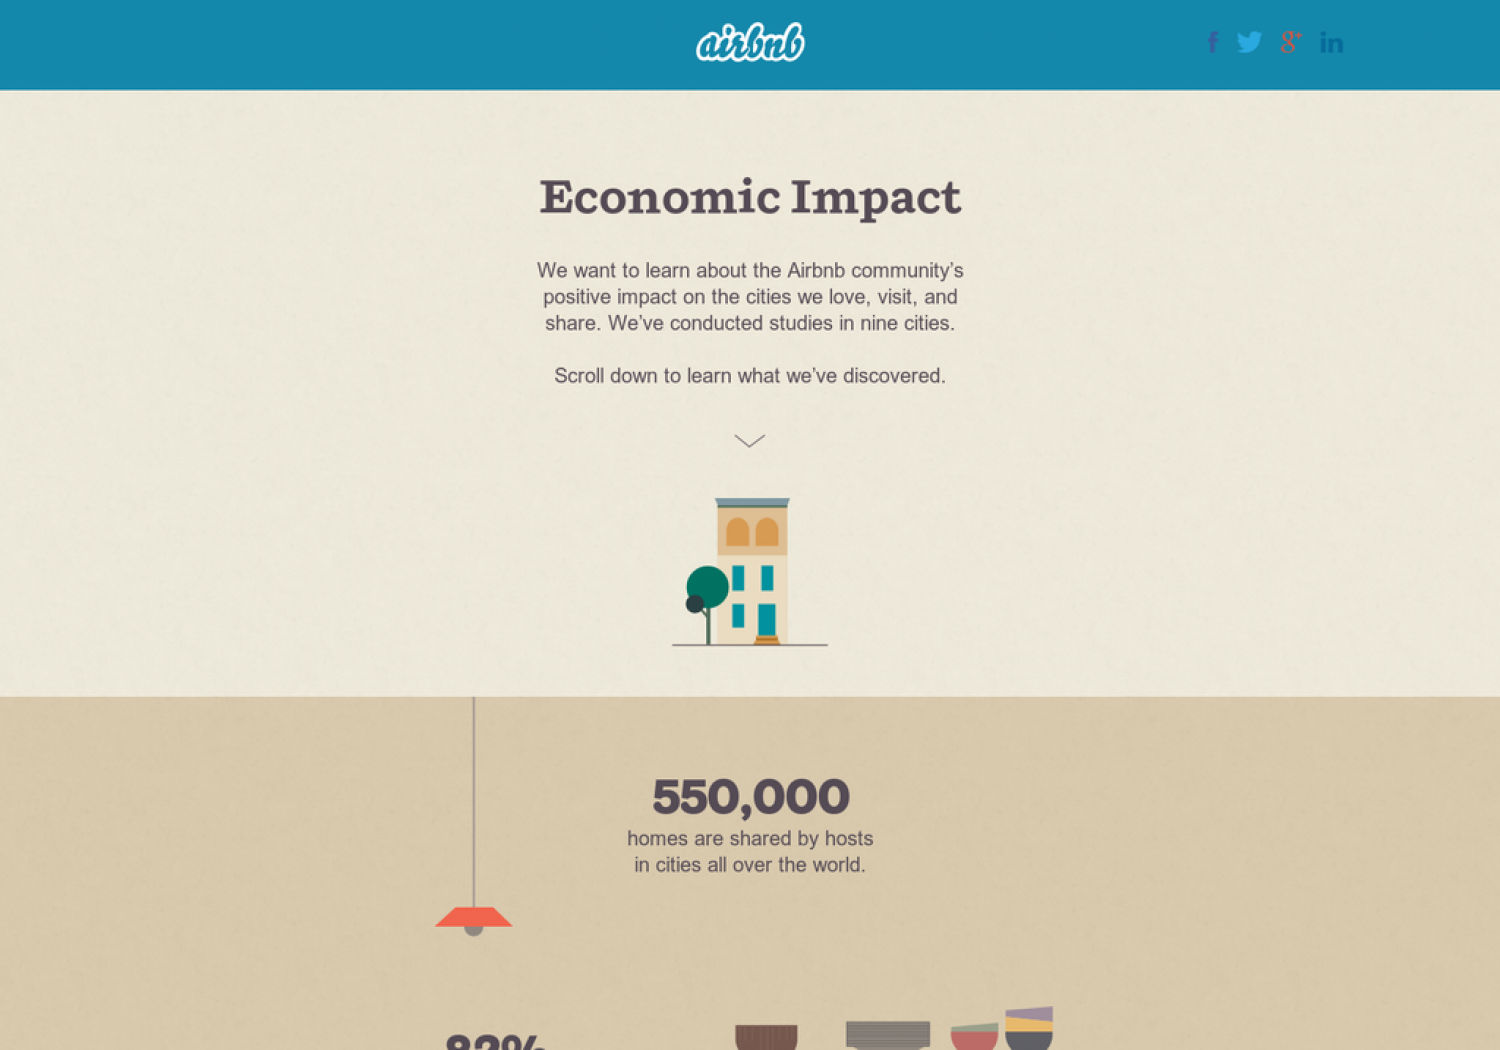 Airbnb's Positive Economic Impact Infographic